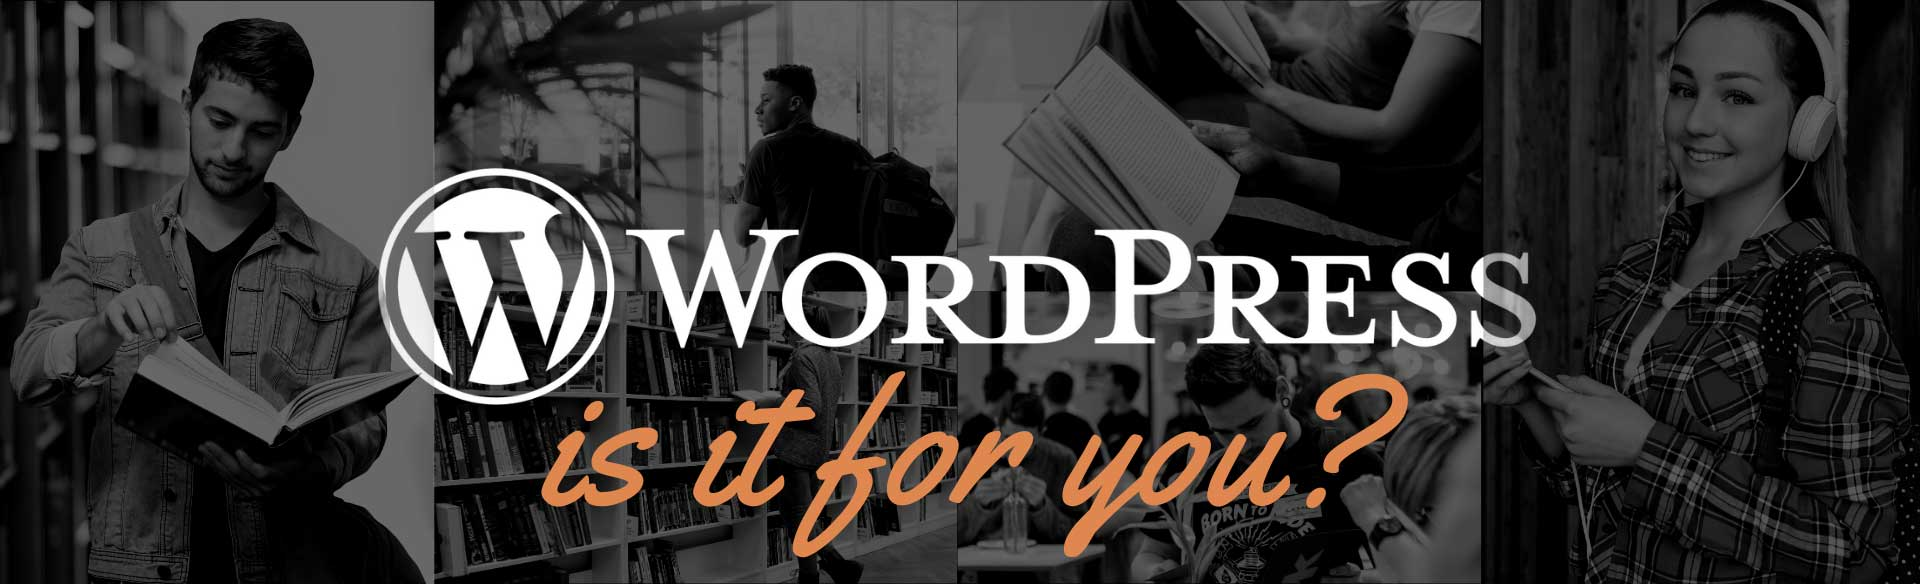 Join our virtual round table discussion of WordPress